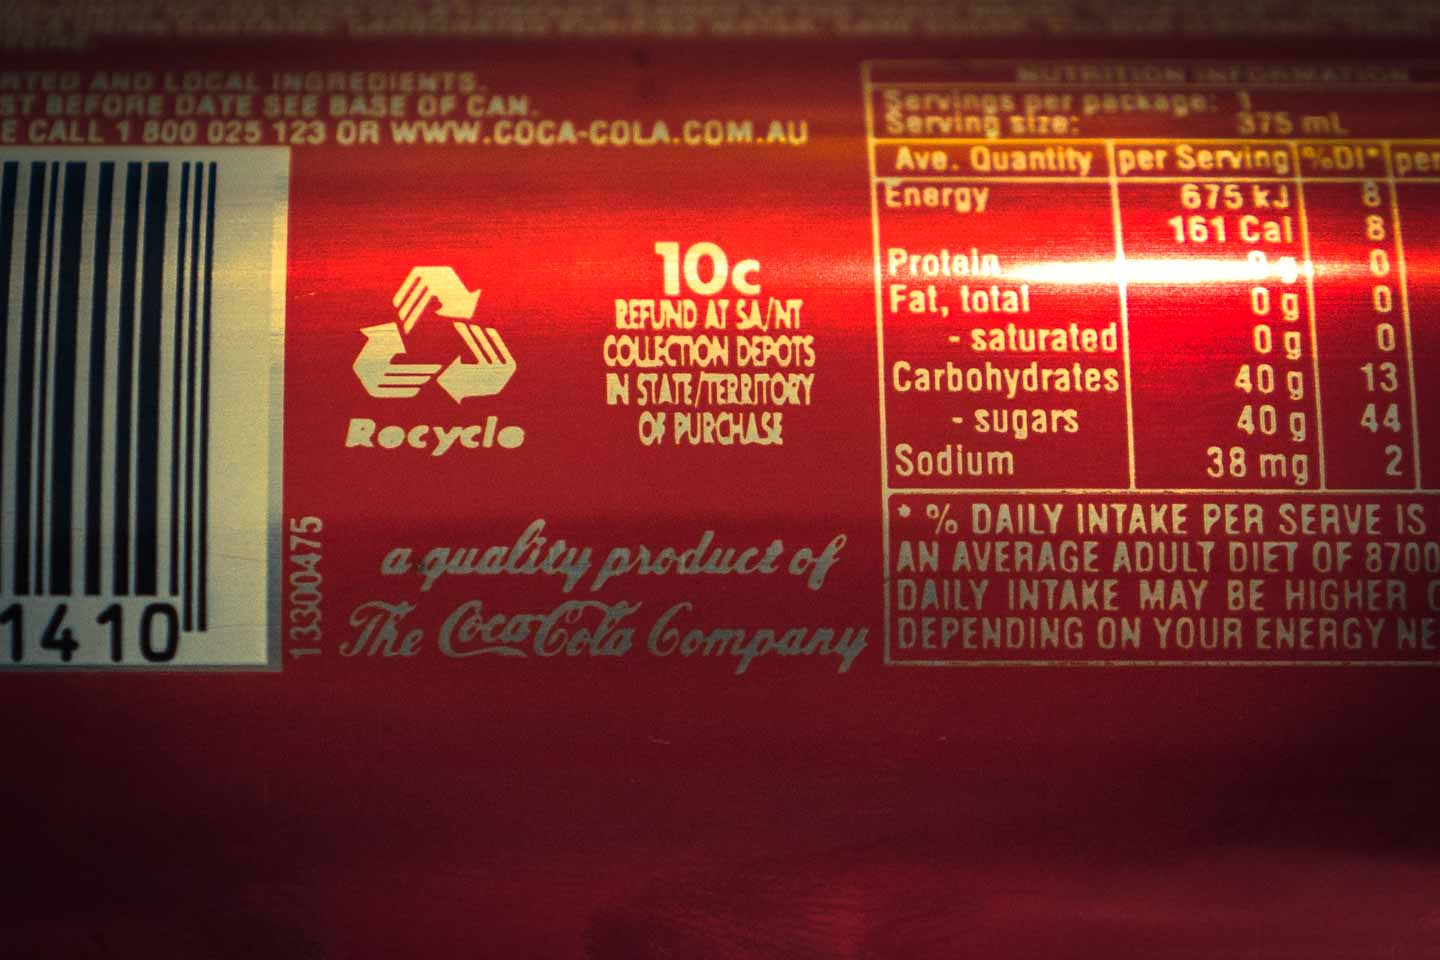 10 cent refund for recycling cans and bottles in Northern Territory and South Australia